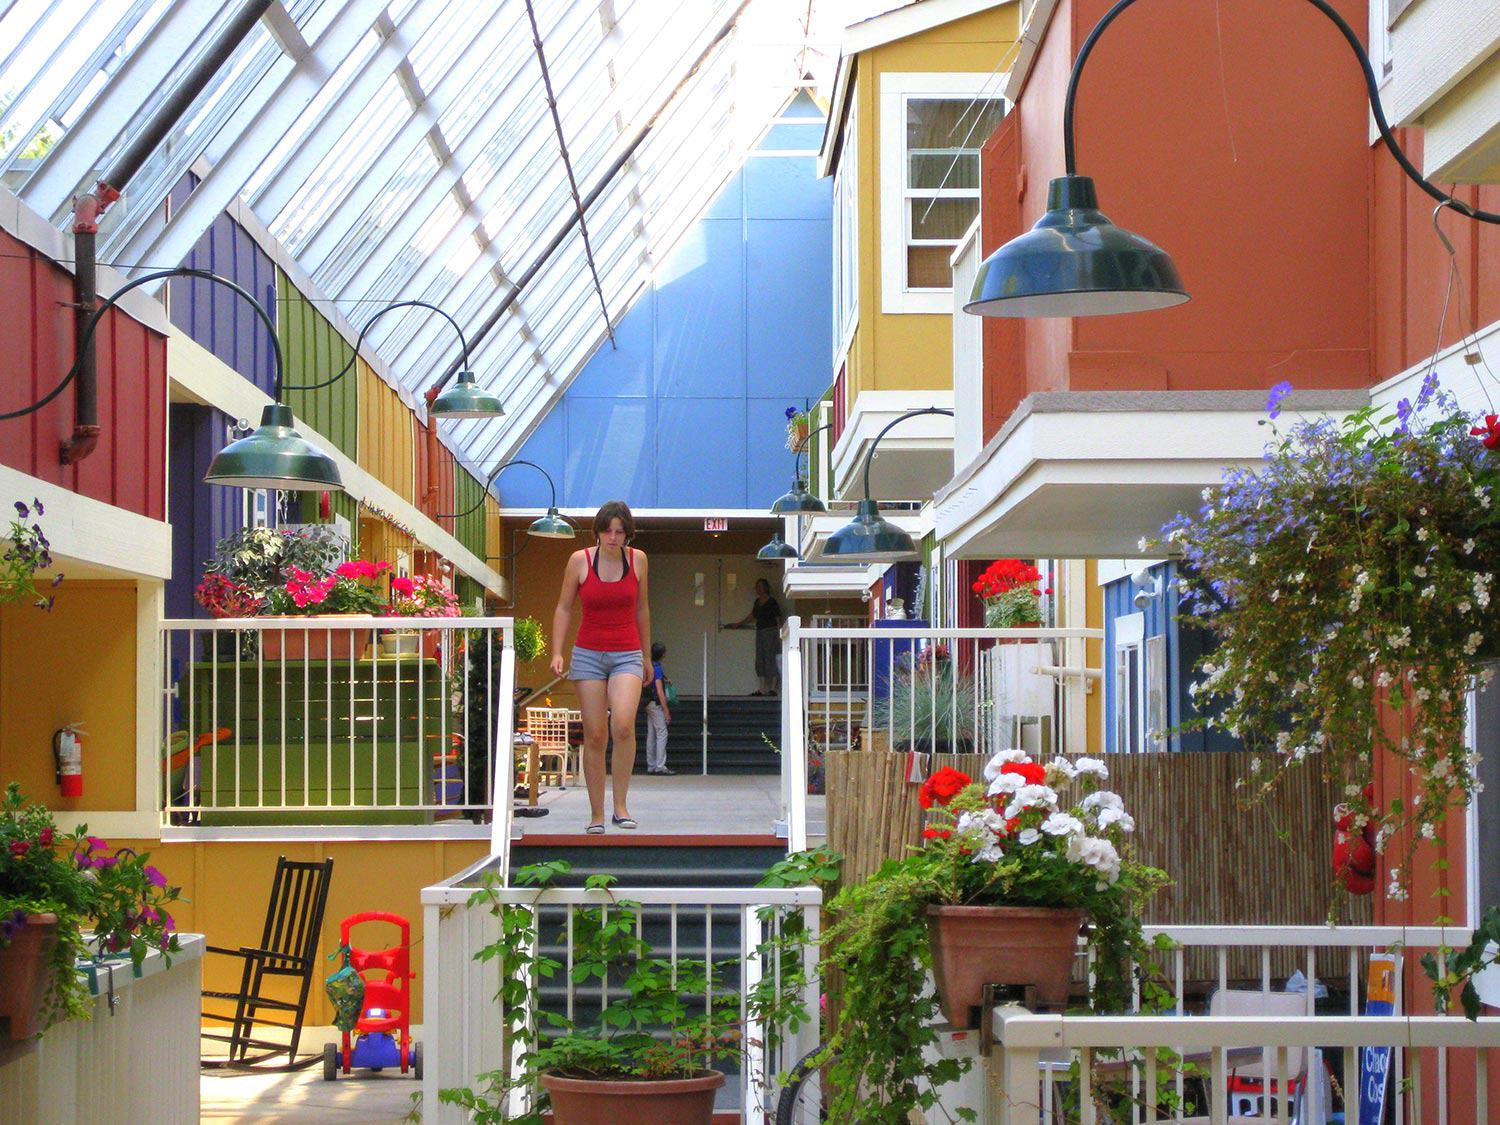 About WindSong Cohousing Community